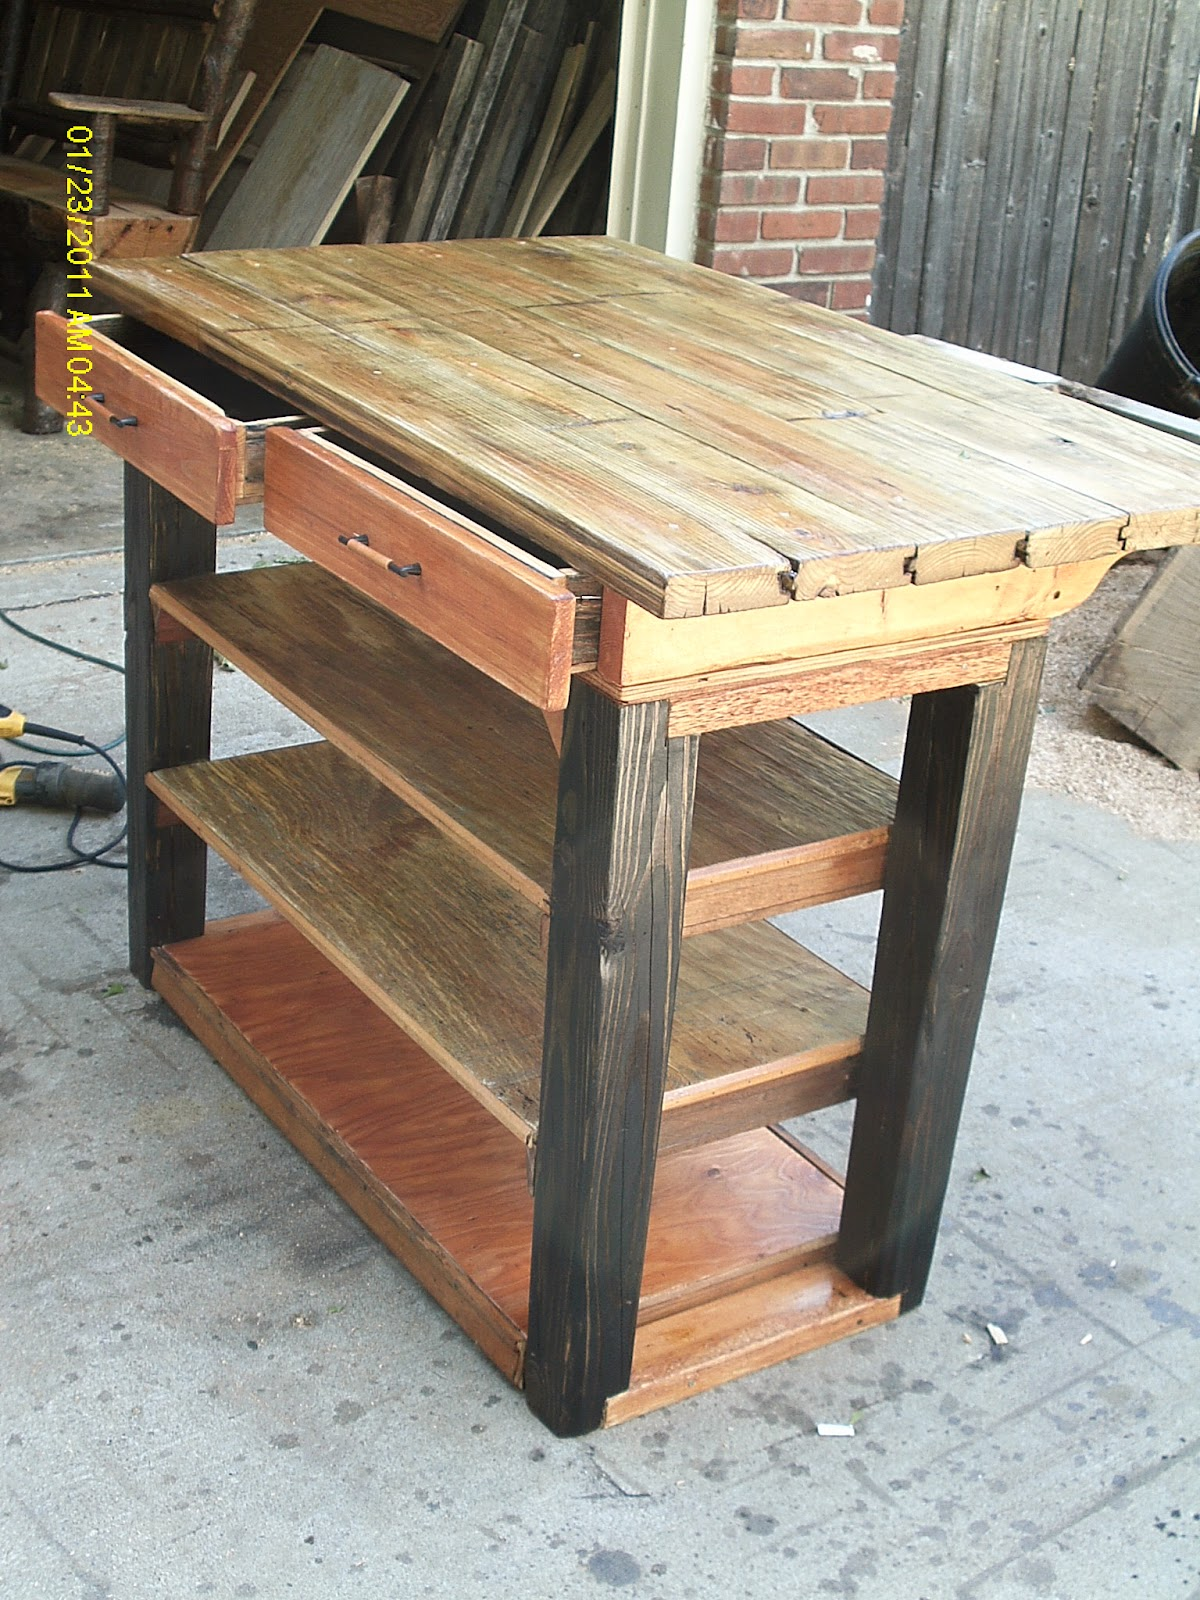 Kitchen Island 36 X 48 handmade rustic & log furniture: custom kitchen island